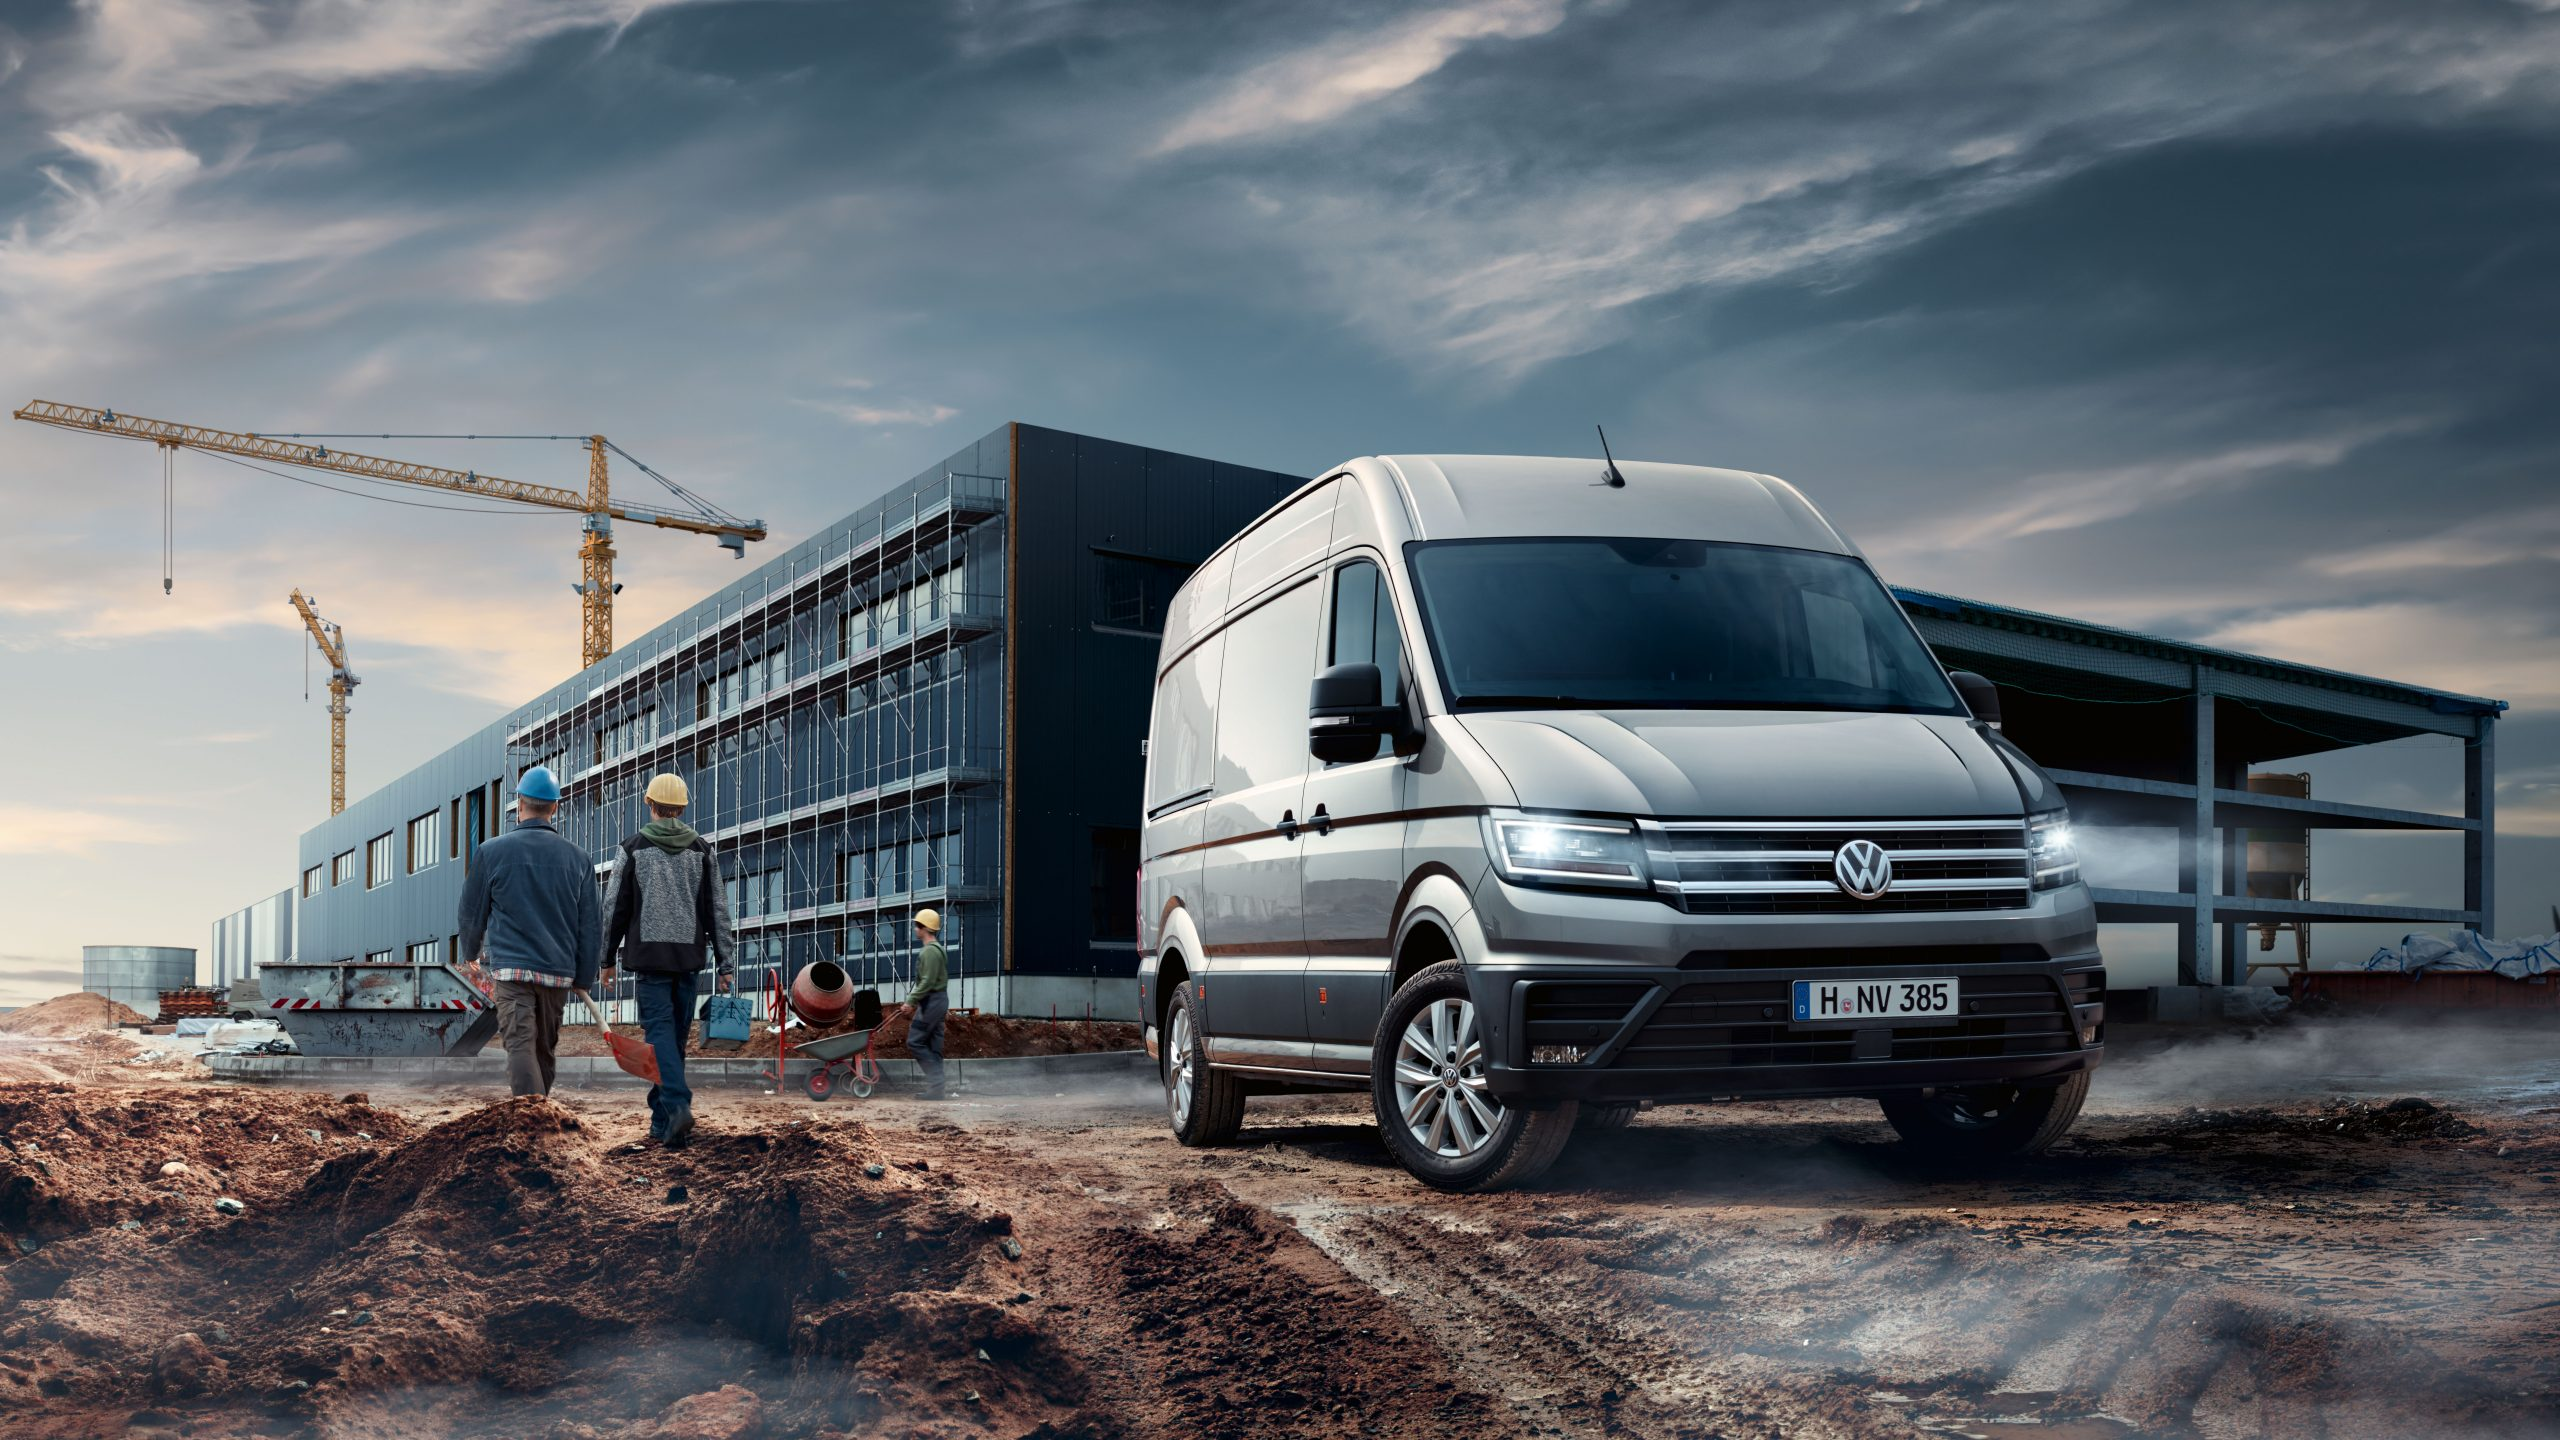 2018 yeni kasa volkswagen crafter teknik zellikleri ve donan mlar a kland. Black Bedroom Furniture Sets. Home Design Ideas